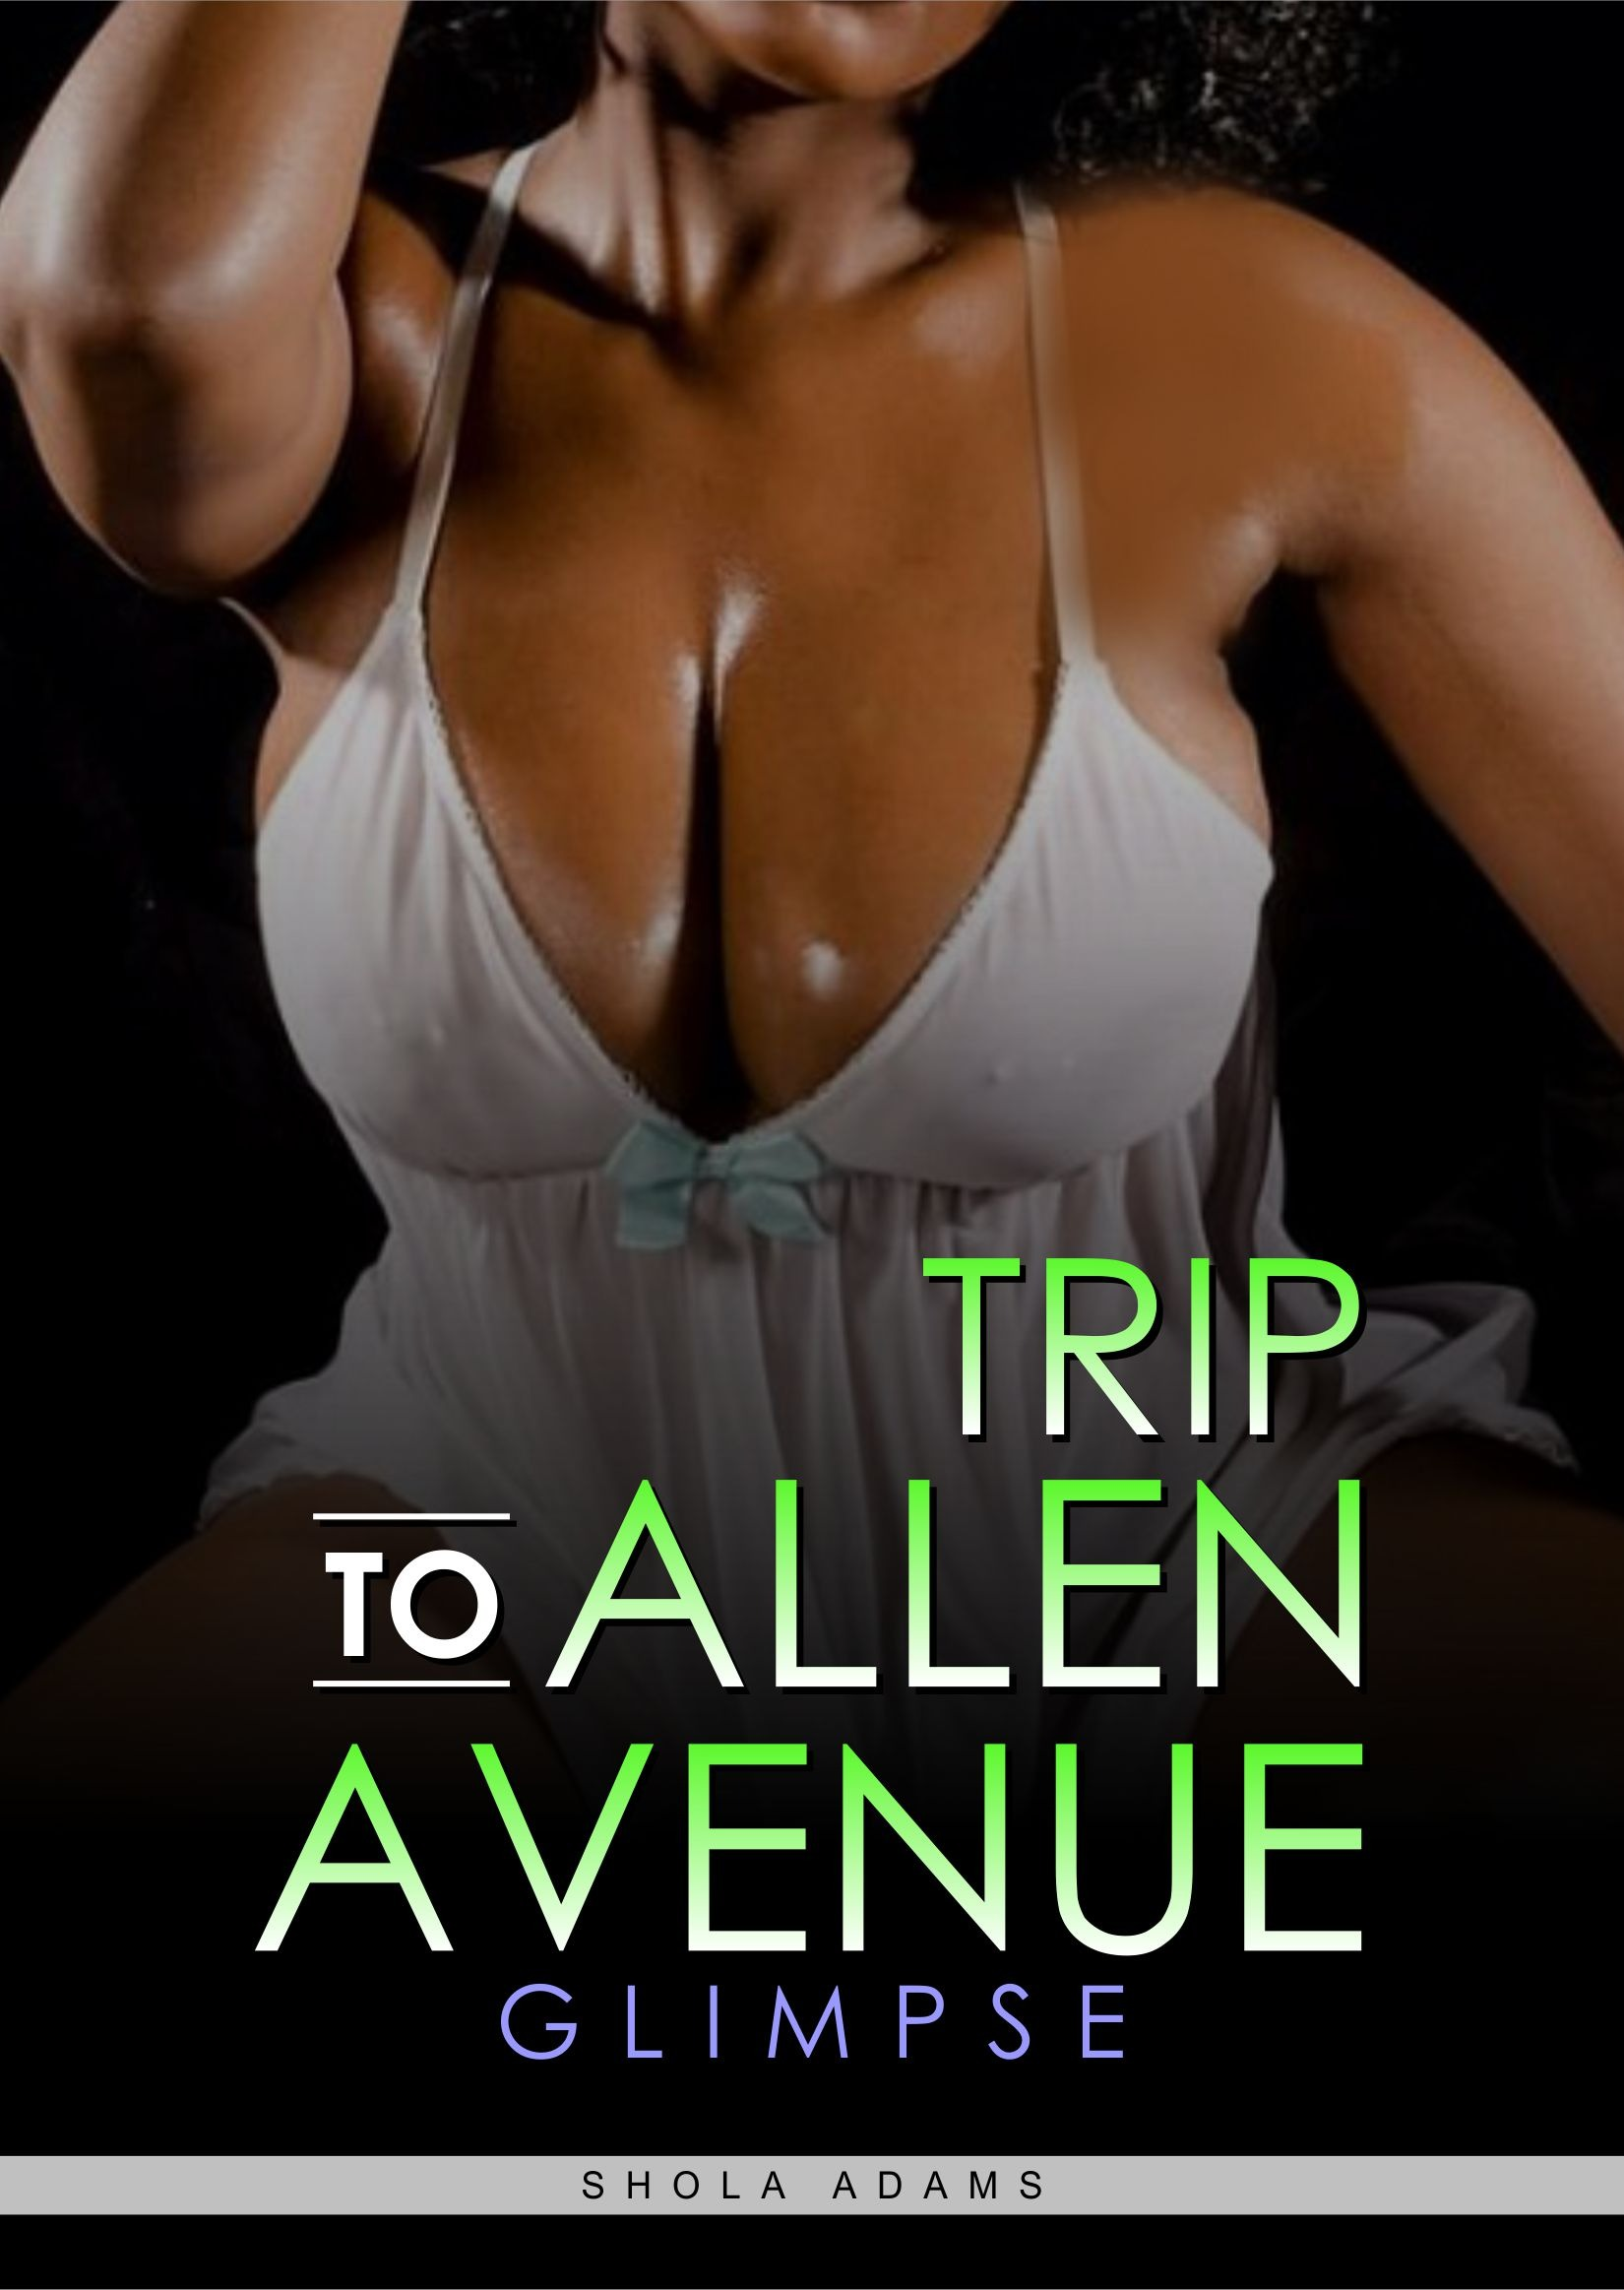 Trip to Allen Avenue (Glimpse) - Erotic Story – Adult Only (18+) - Adult Only (18+)